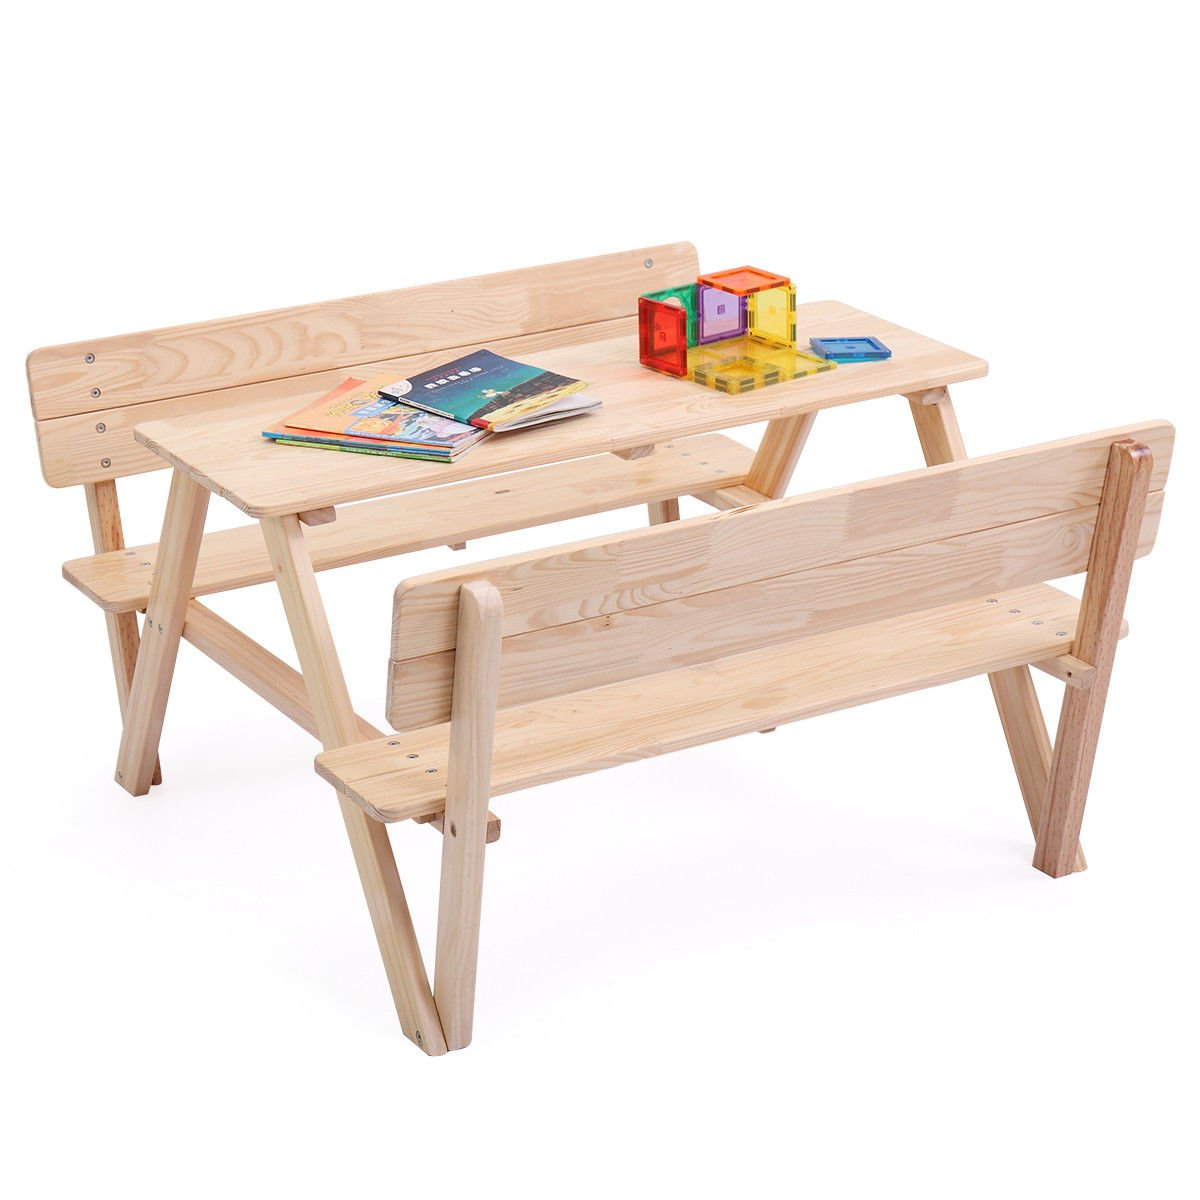 Picnic Children Table and Chairs Set Camping Outdoor Portable Classic Style